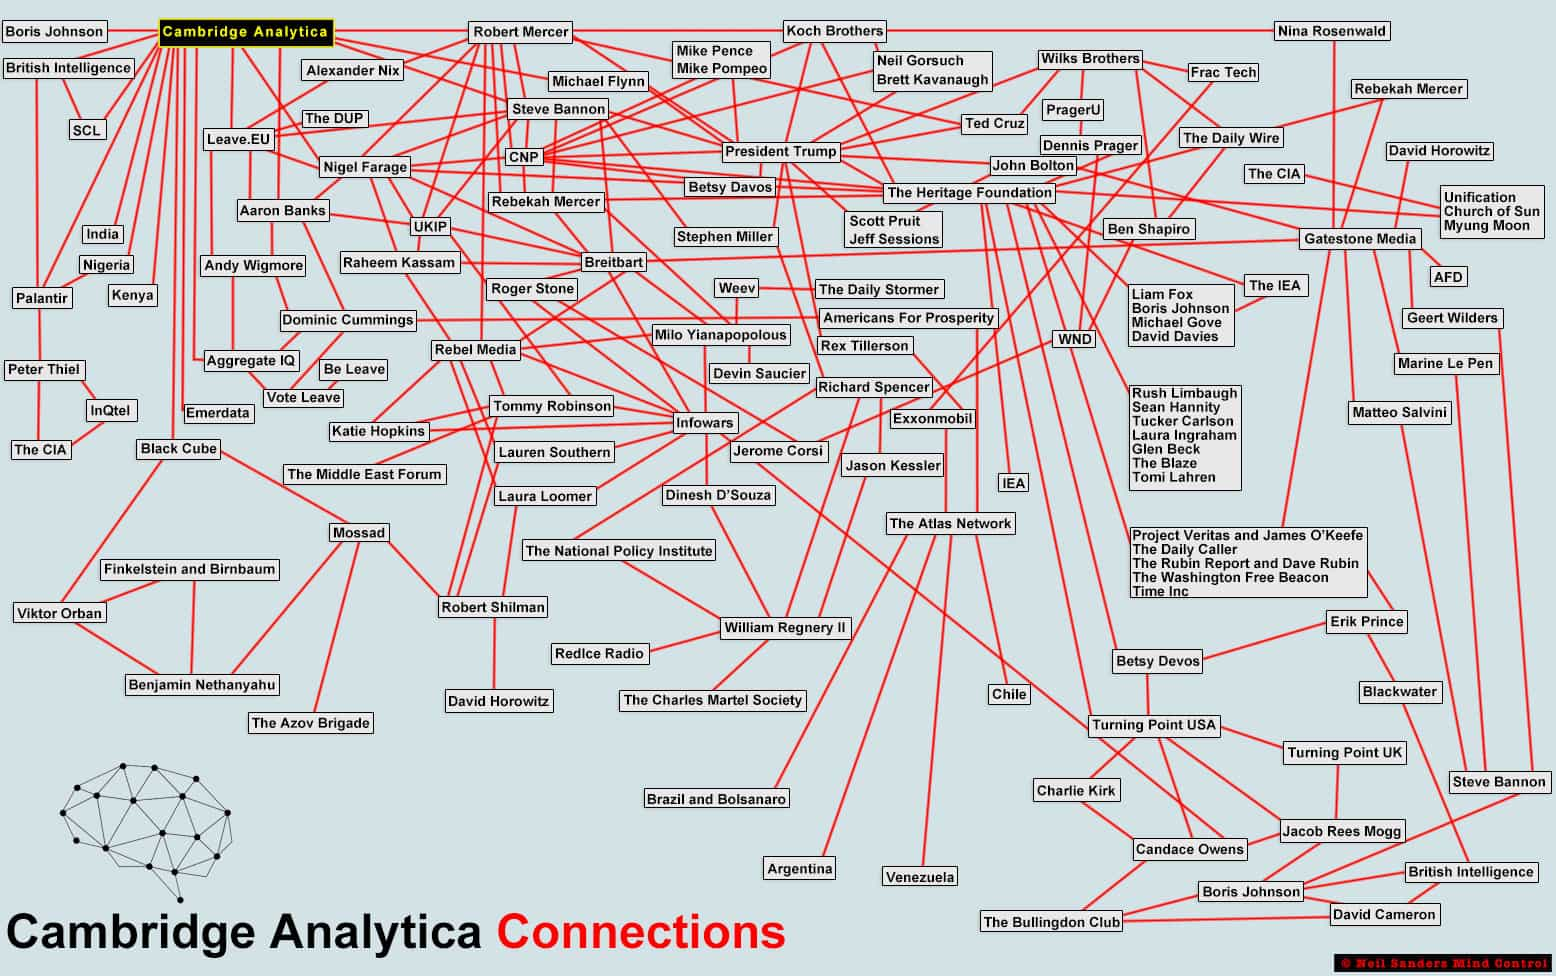 Cambridge Analytica Connections